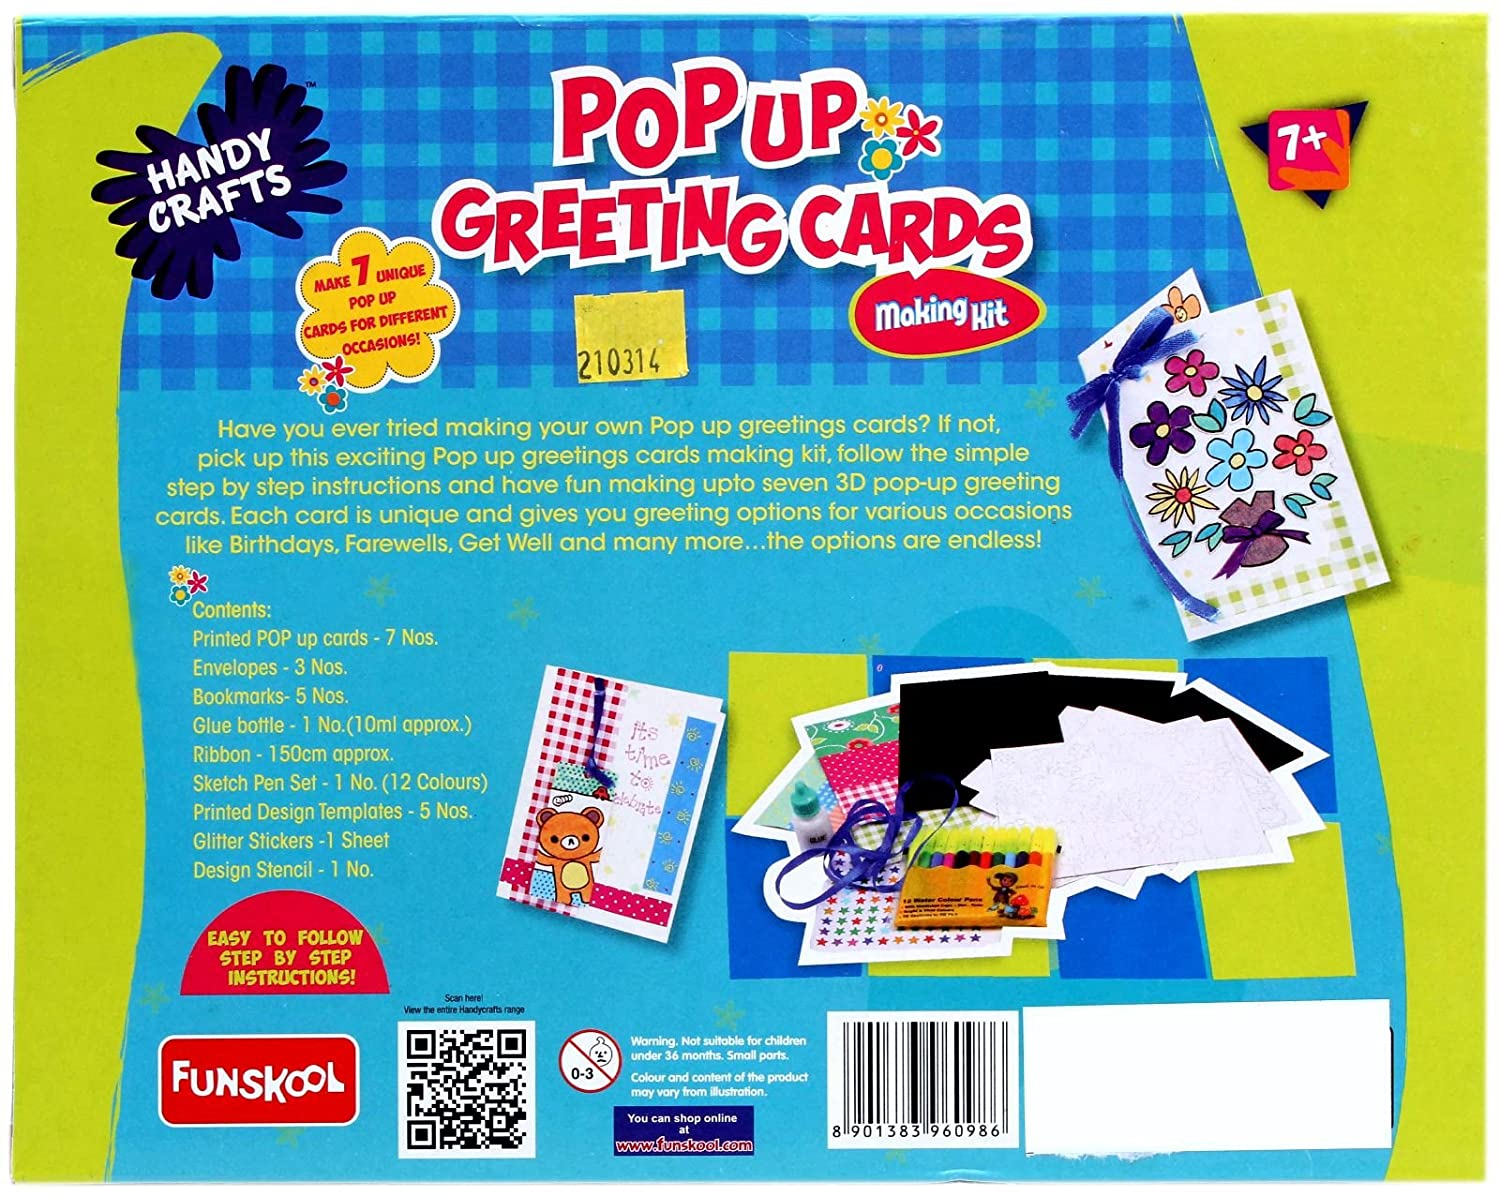 Funskool handy crafts pop up greeting cards multi color amazon funskool handy crafts pop up greeting cards multi color amazon toys games m4hsunfo